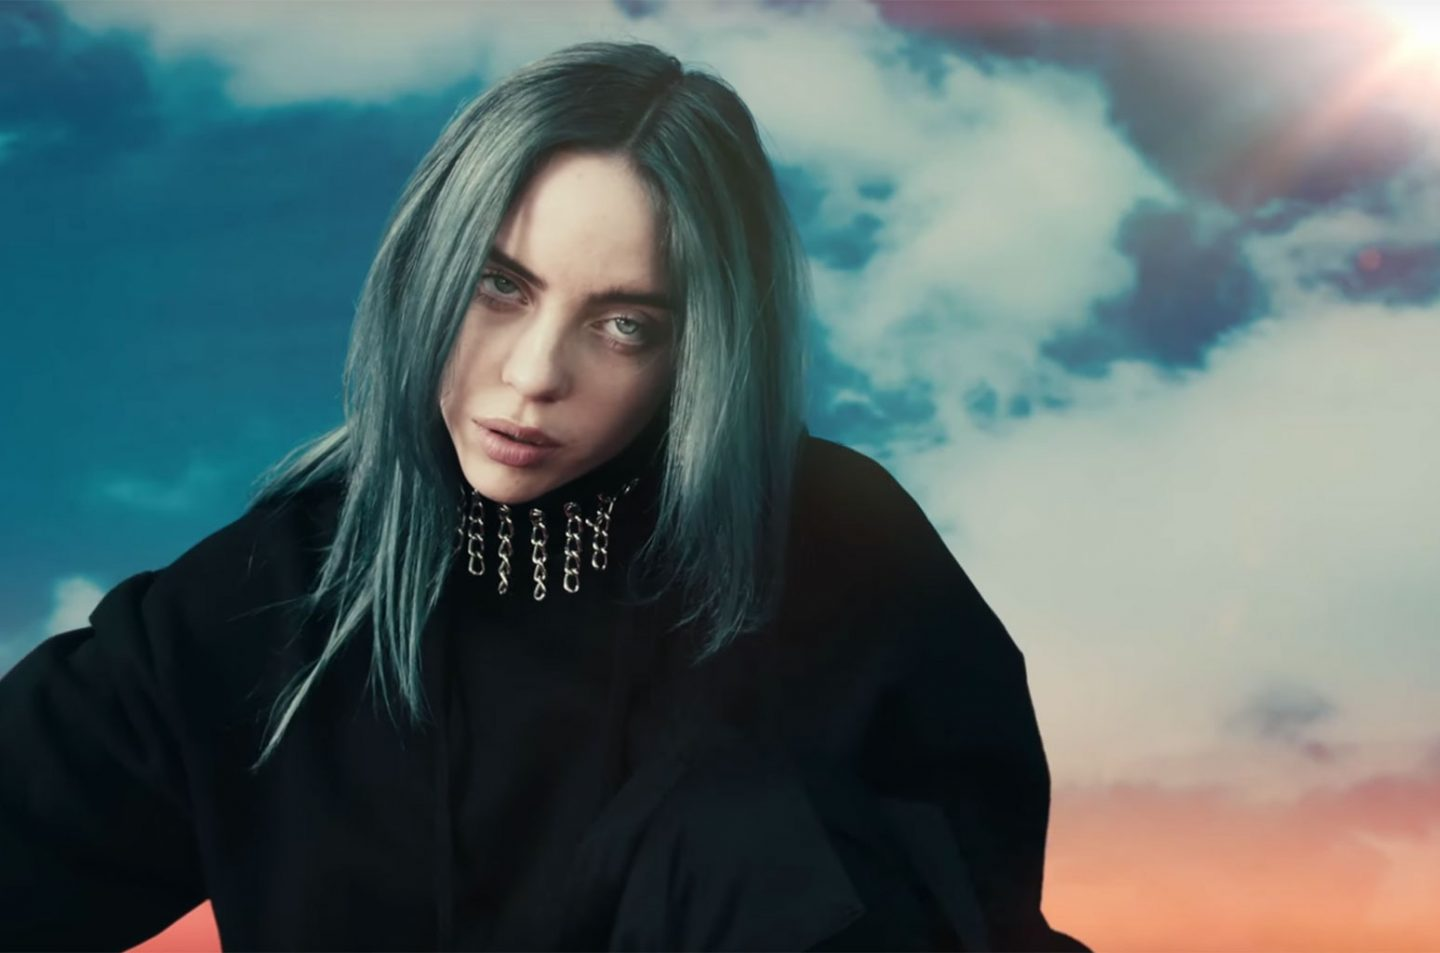 Billie Eilish – Bad guy